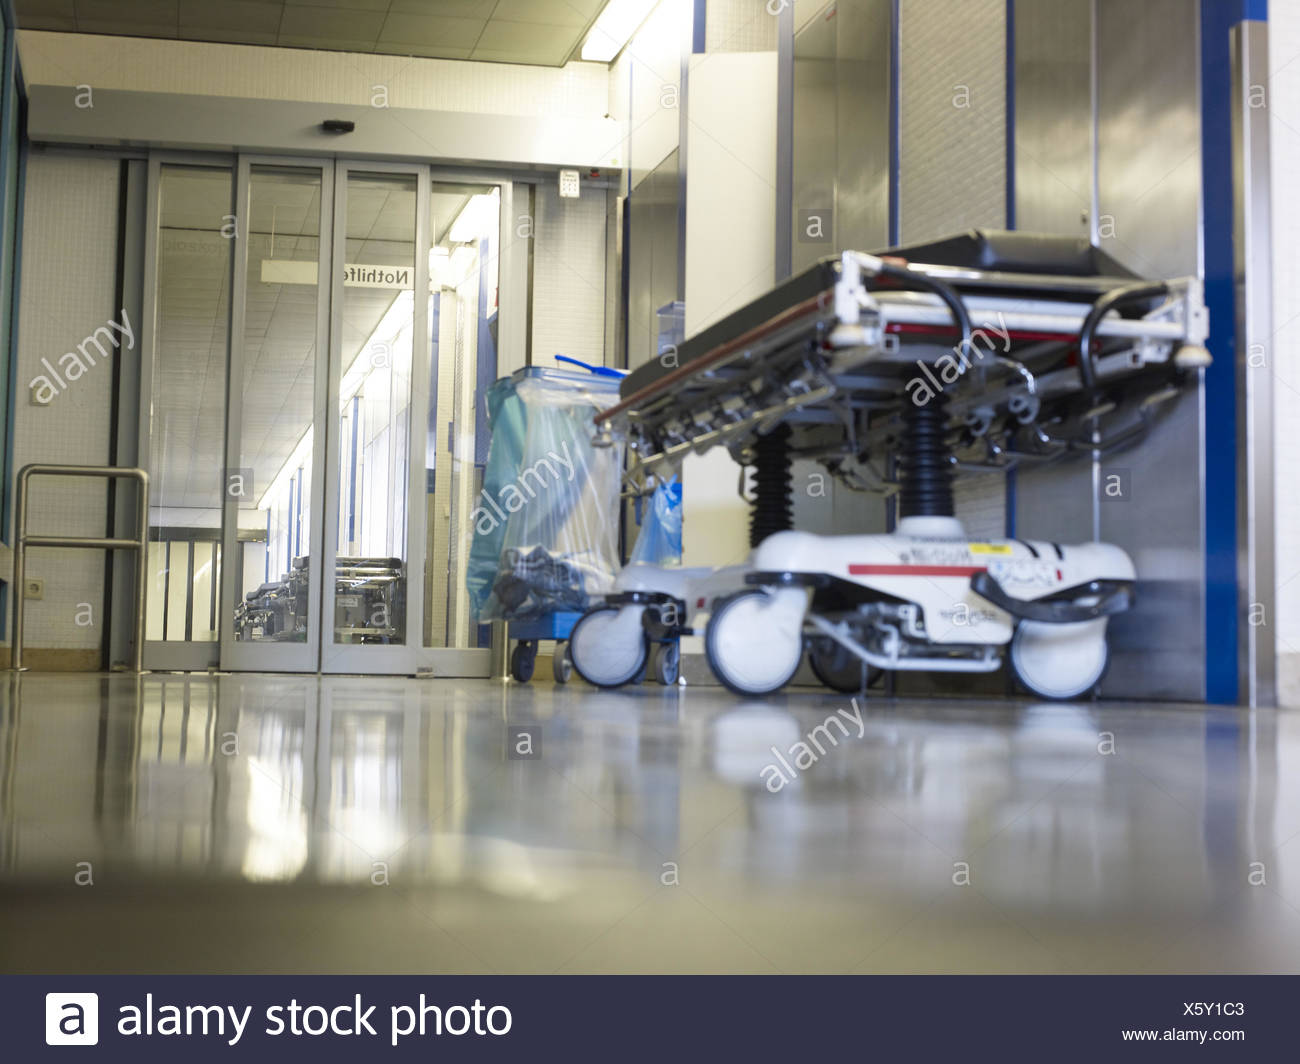 Rolling stretcher, hospital hall, outpatients, clinic, - Stock Image